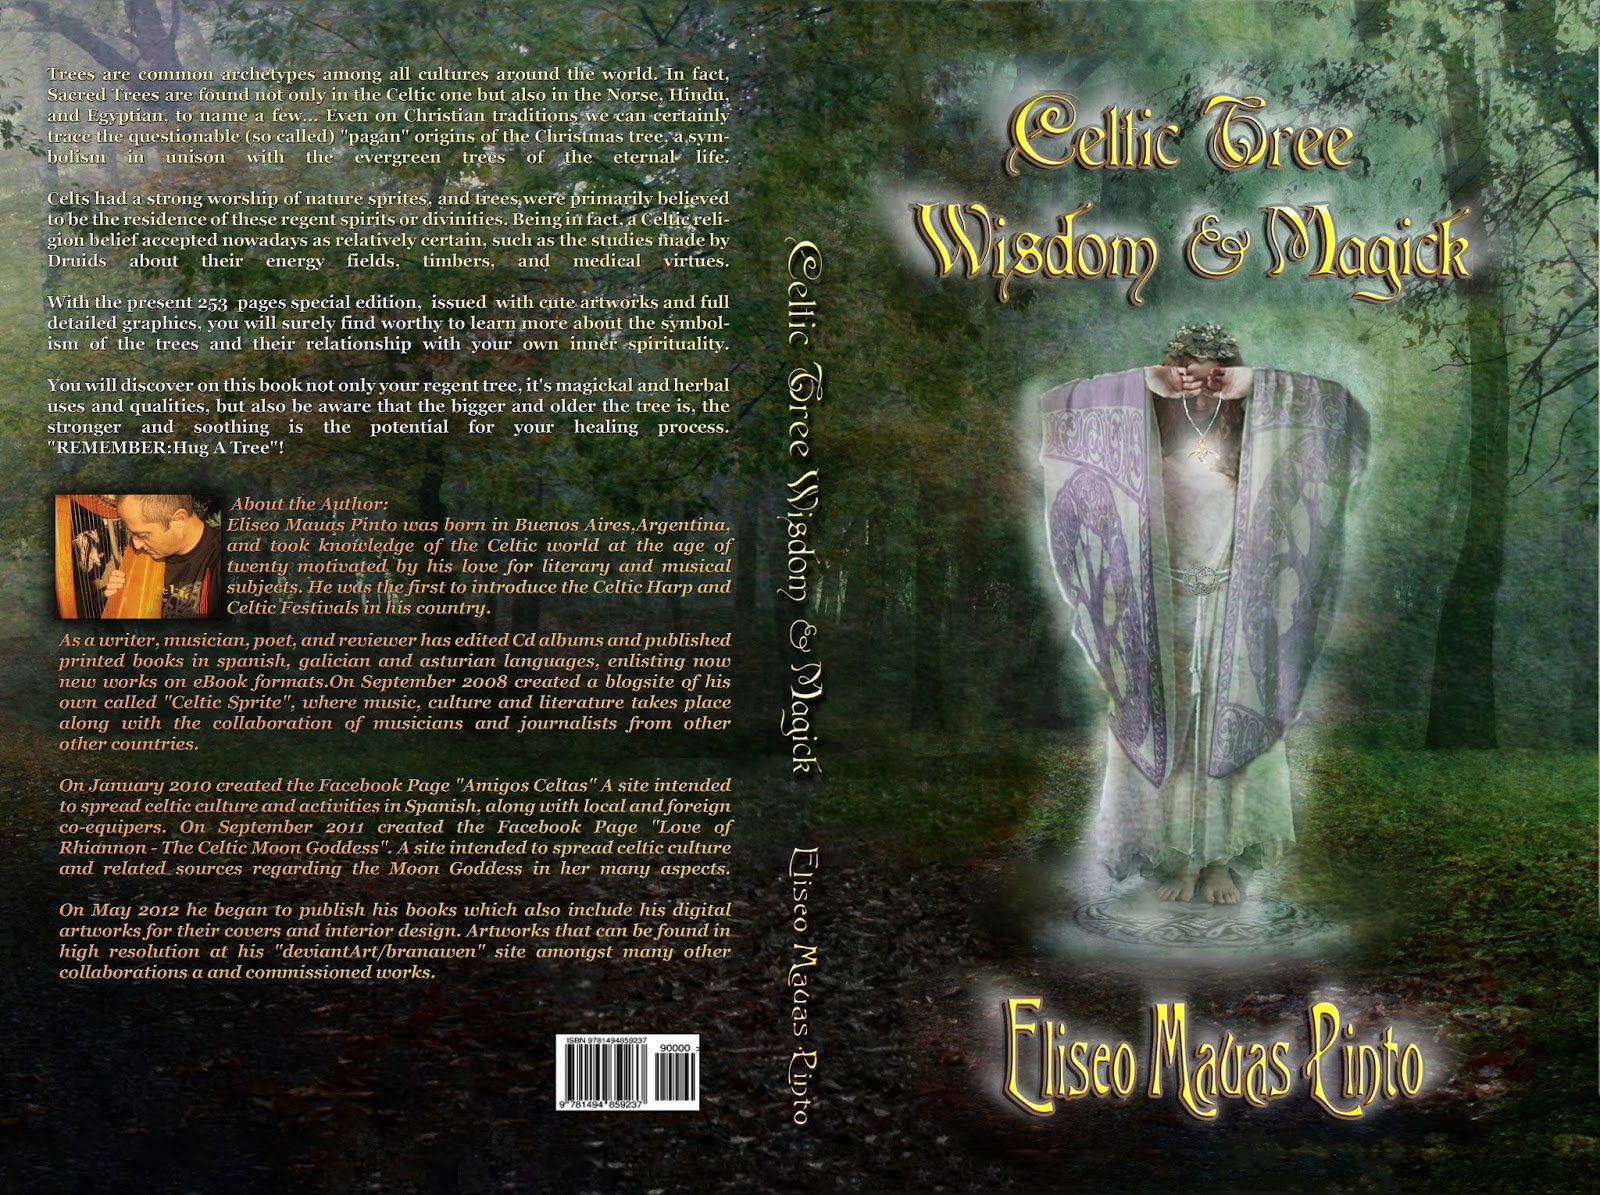 Celtic sprite celtic tree wisdom magick paperback edition by celtic tree wisdom magick paperback edition by eliseo mauas pinto fandeluxe Images